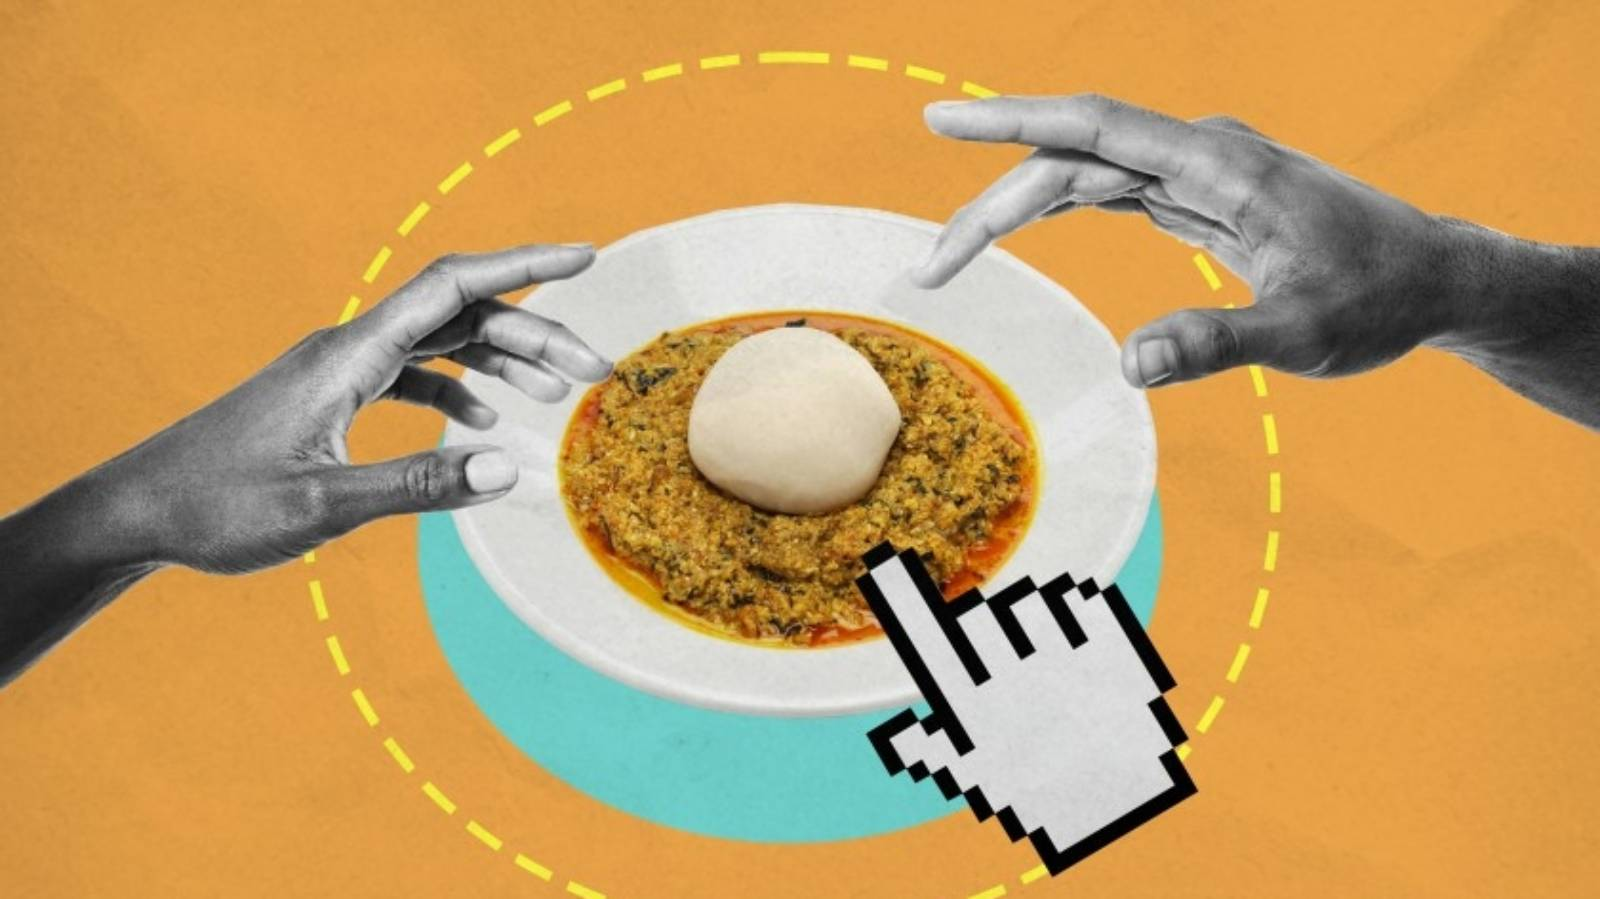 West African fufu is the latest viral food on TikTok